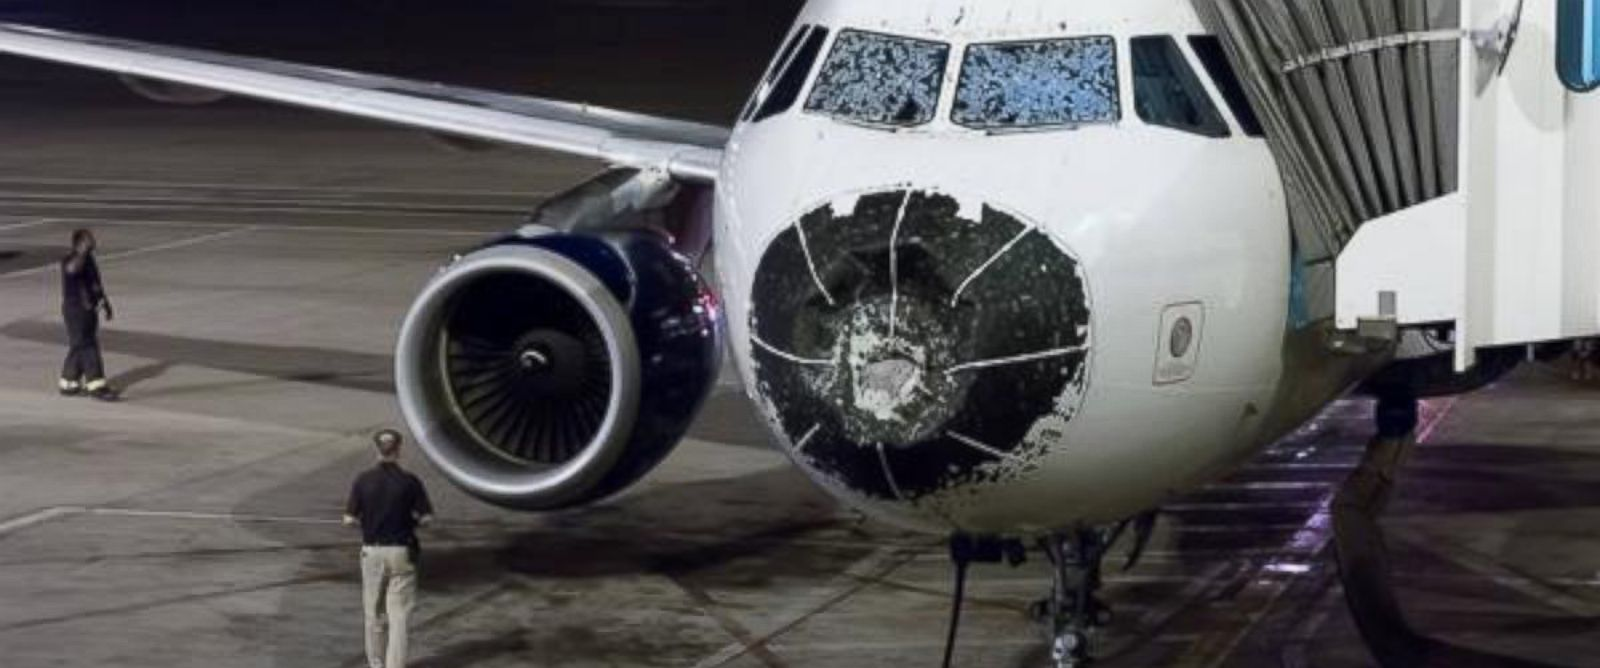 "PHOTO: Jeff Johnson posted this photo to Twitter on Aug. 8, 2015 with the caption, ""Hail damage to my plane while flying from Boston to Salt Lake. Emergency landing in Denver."""